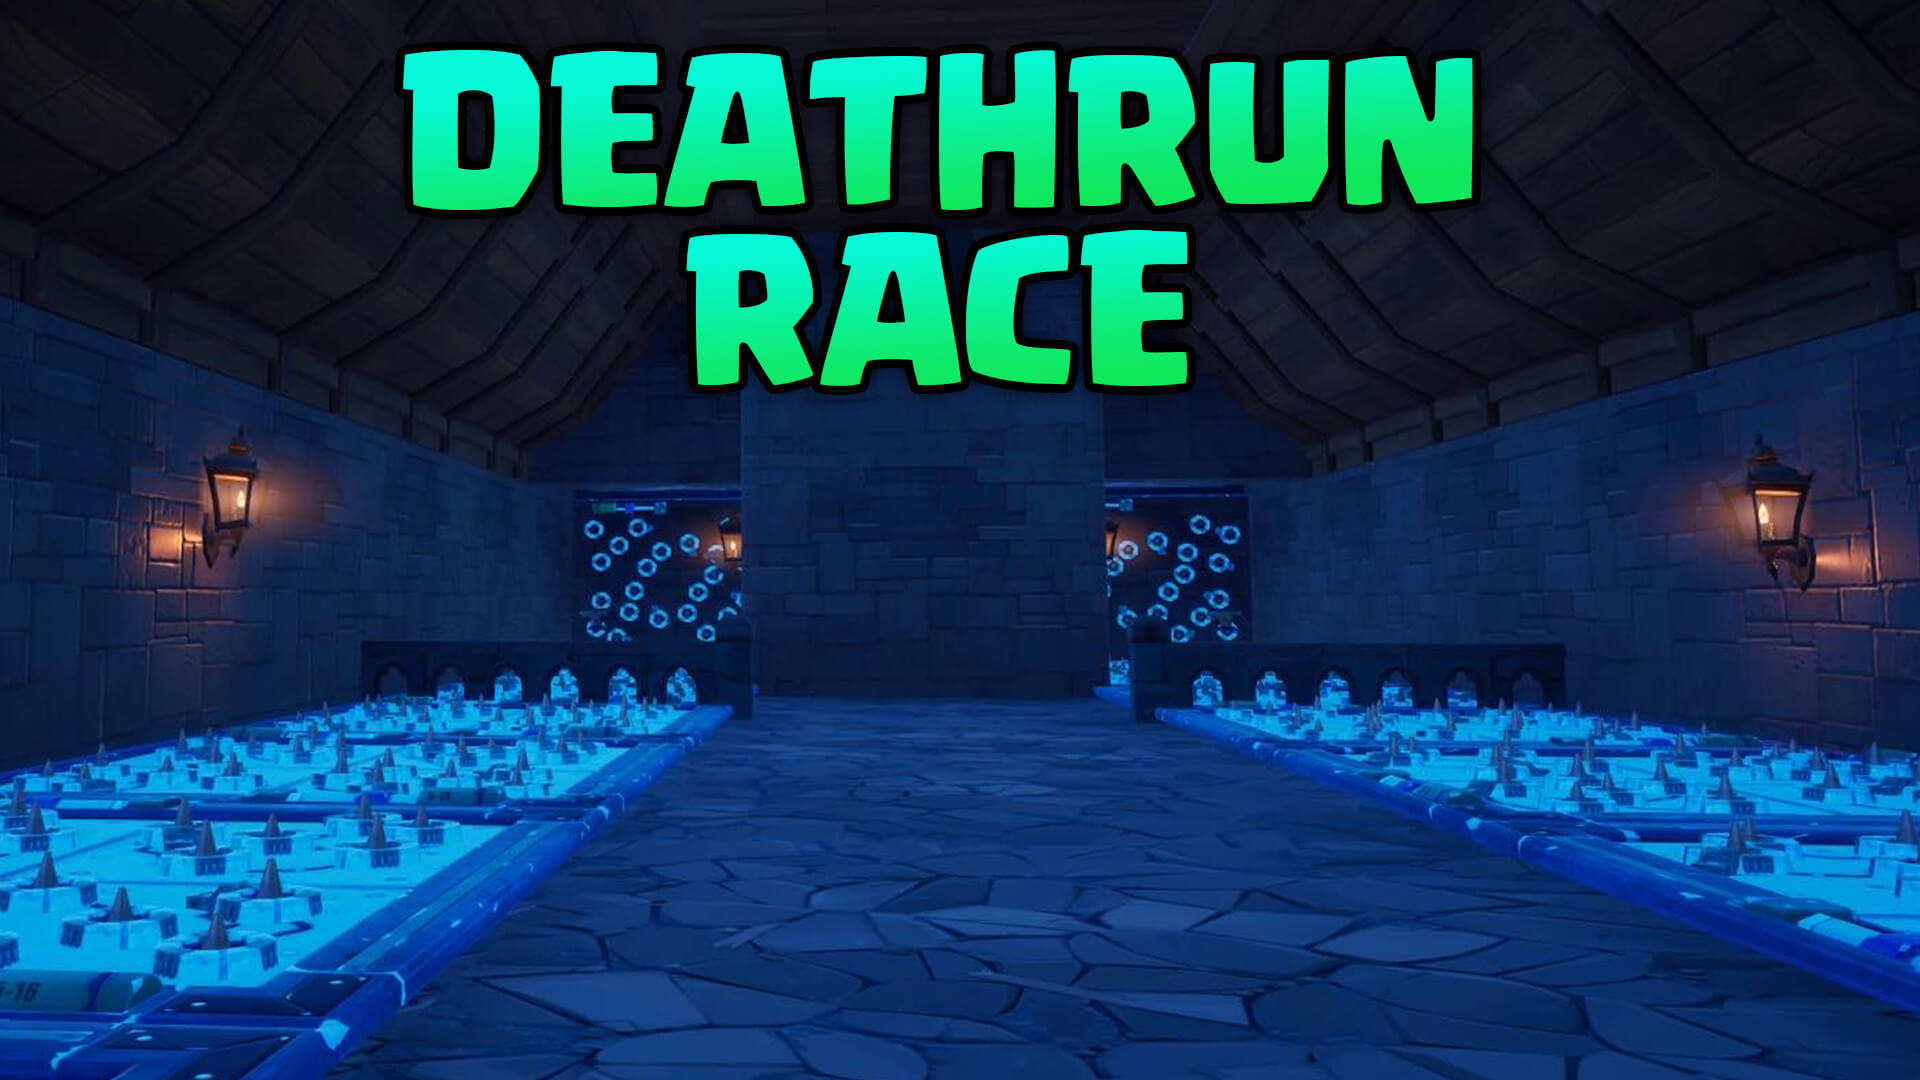 DEATHRUN RACE (HARD)